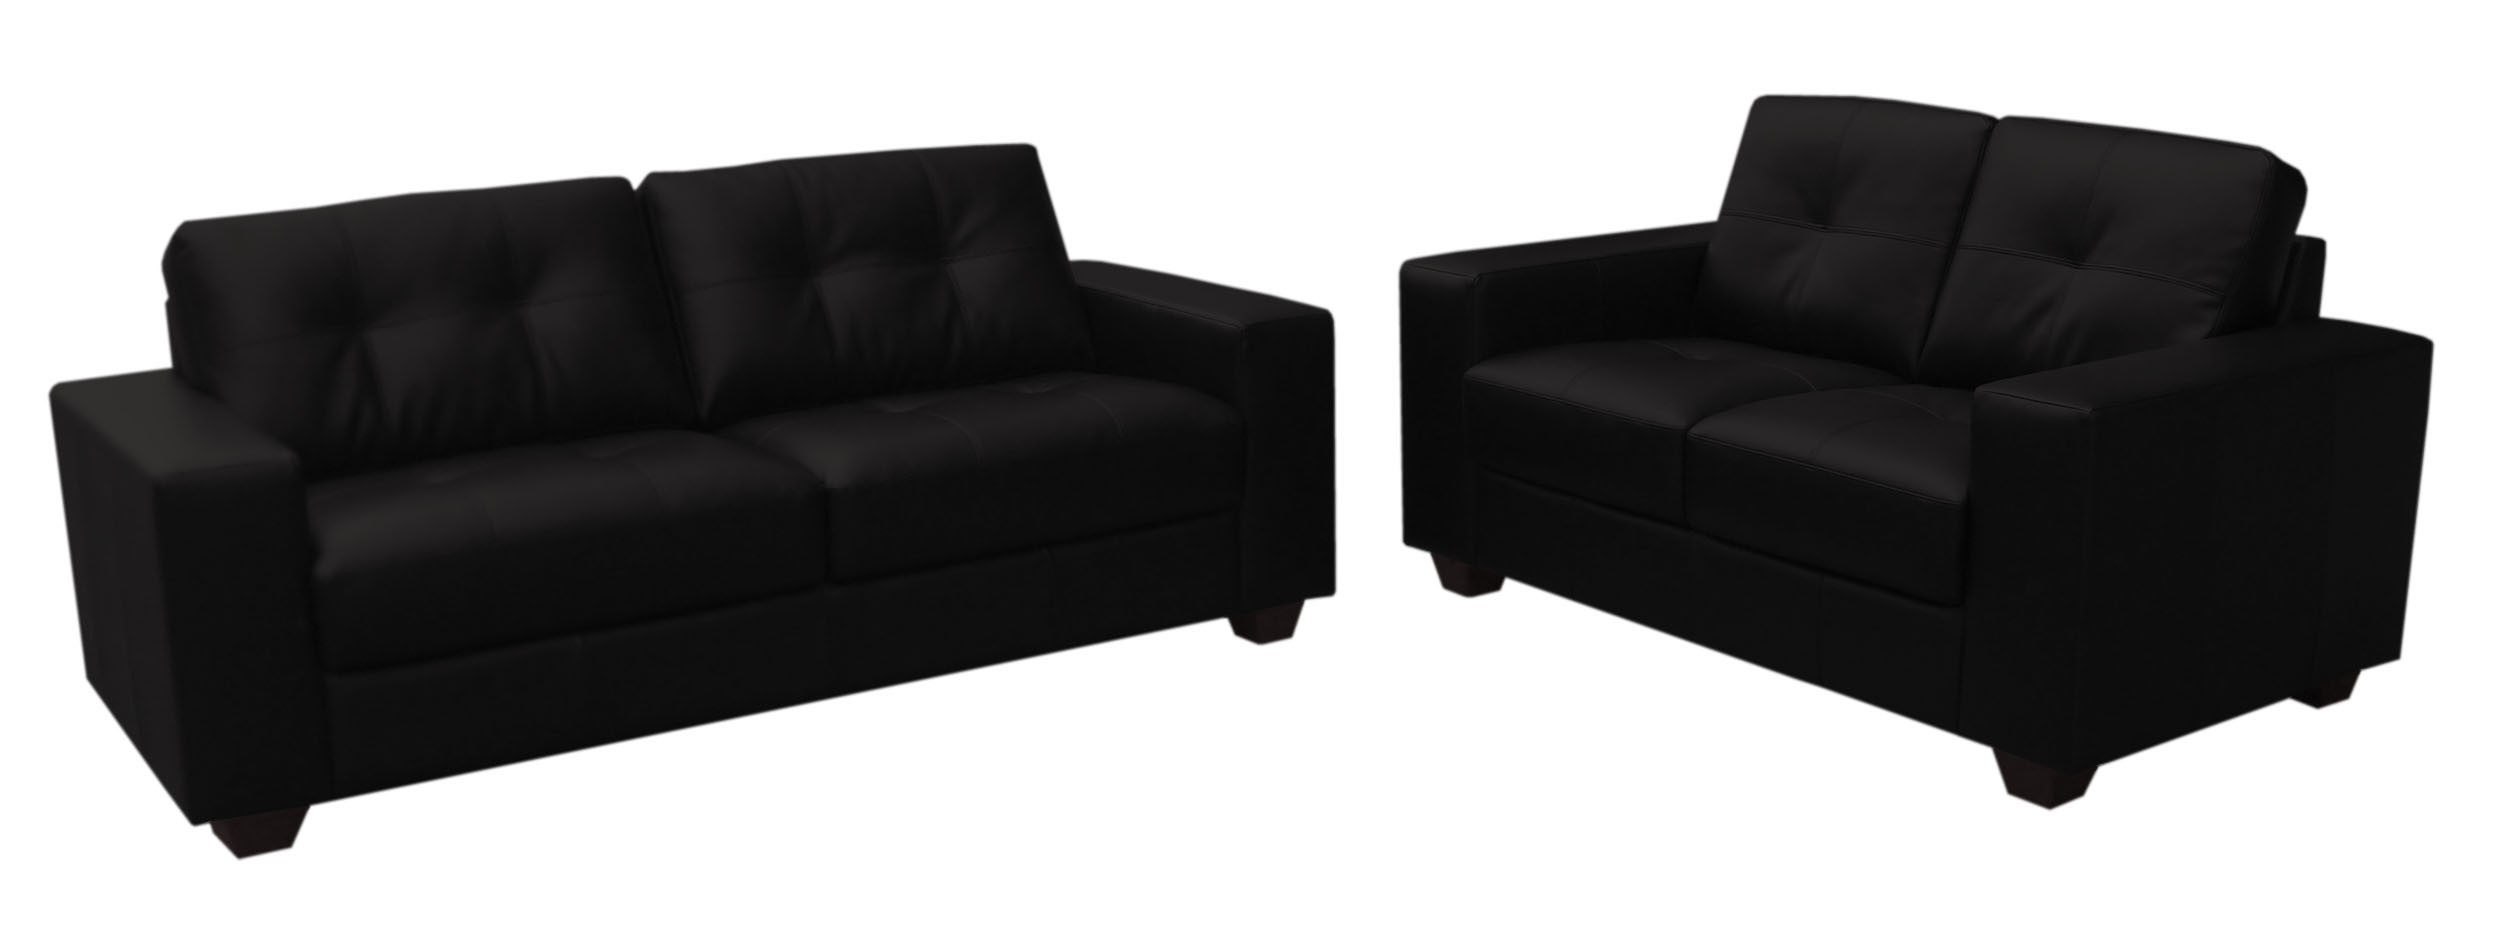 Well Known Black 2 Seater Sofas Intended For Faux Black Leather Sofa Two Piece Suite 3+2 Seater – Furniture (View 19 of 20)